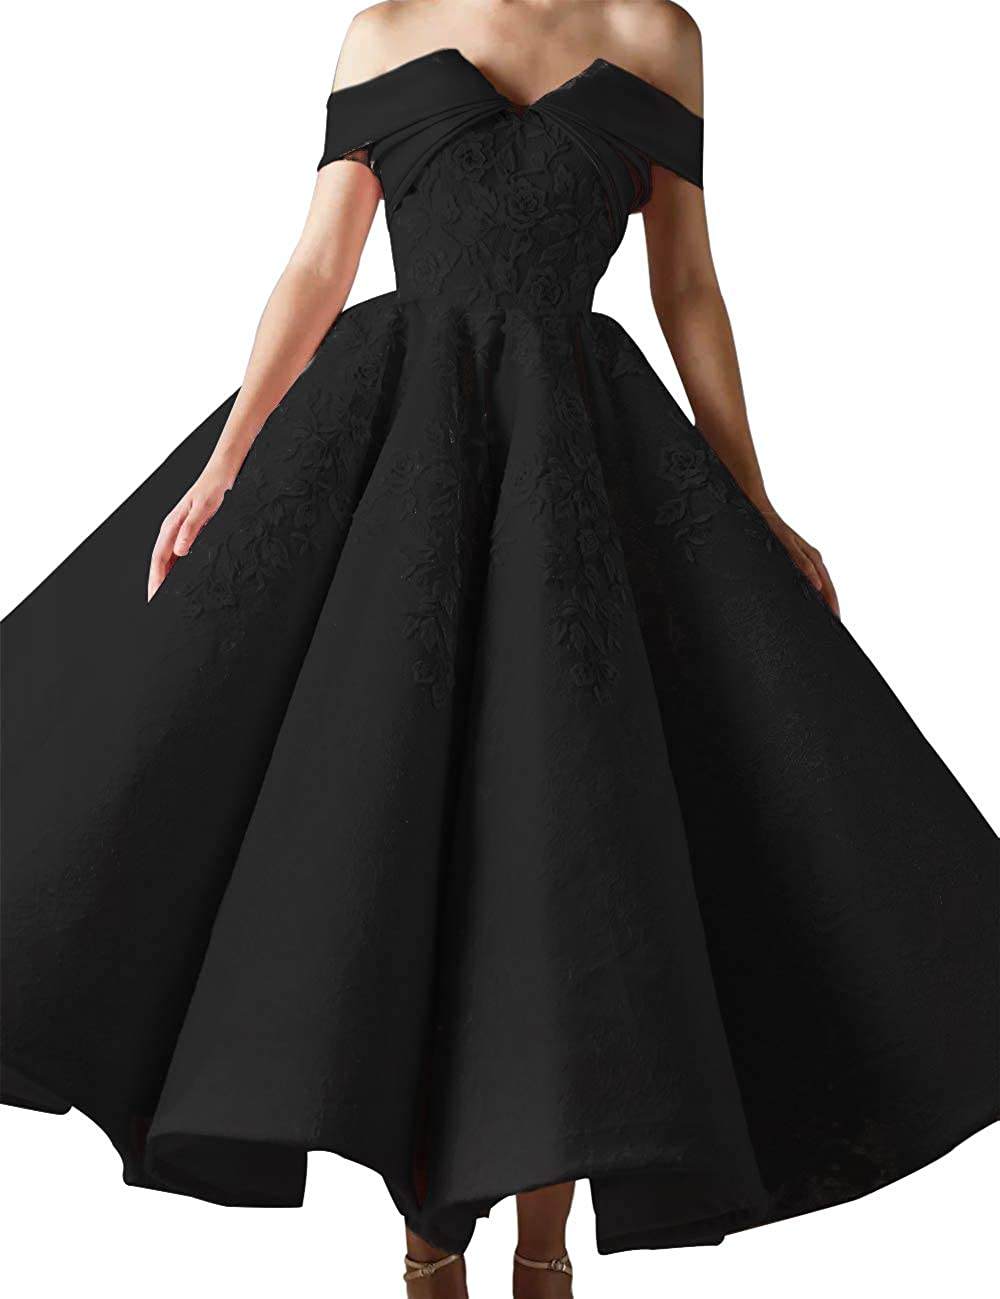 Asoiree Women s Off Shoulder Prom Gowns Lace Appliques Evening Dresses  Sweetheart Sleeveless Big Skirt at Amazon Women s Clothing store  cb39b8fc2